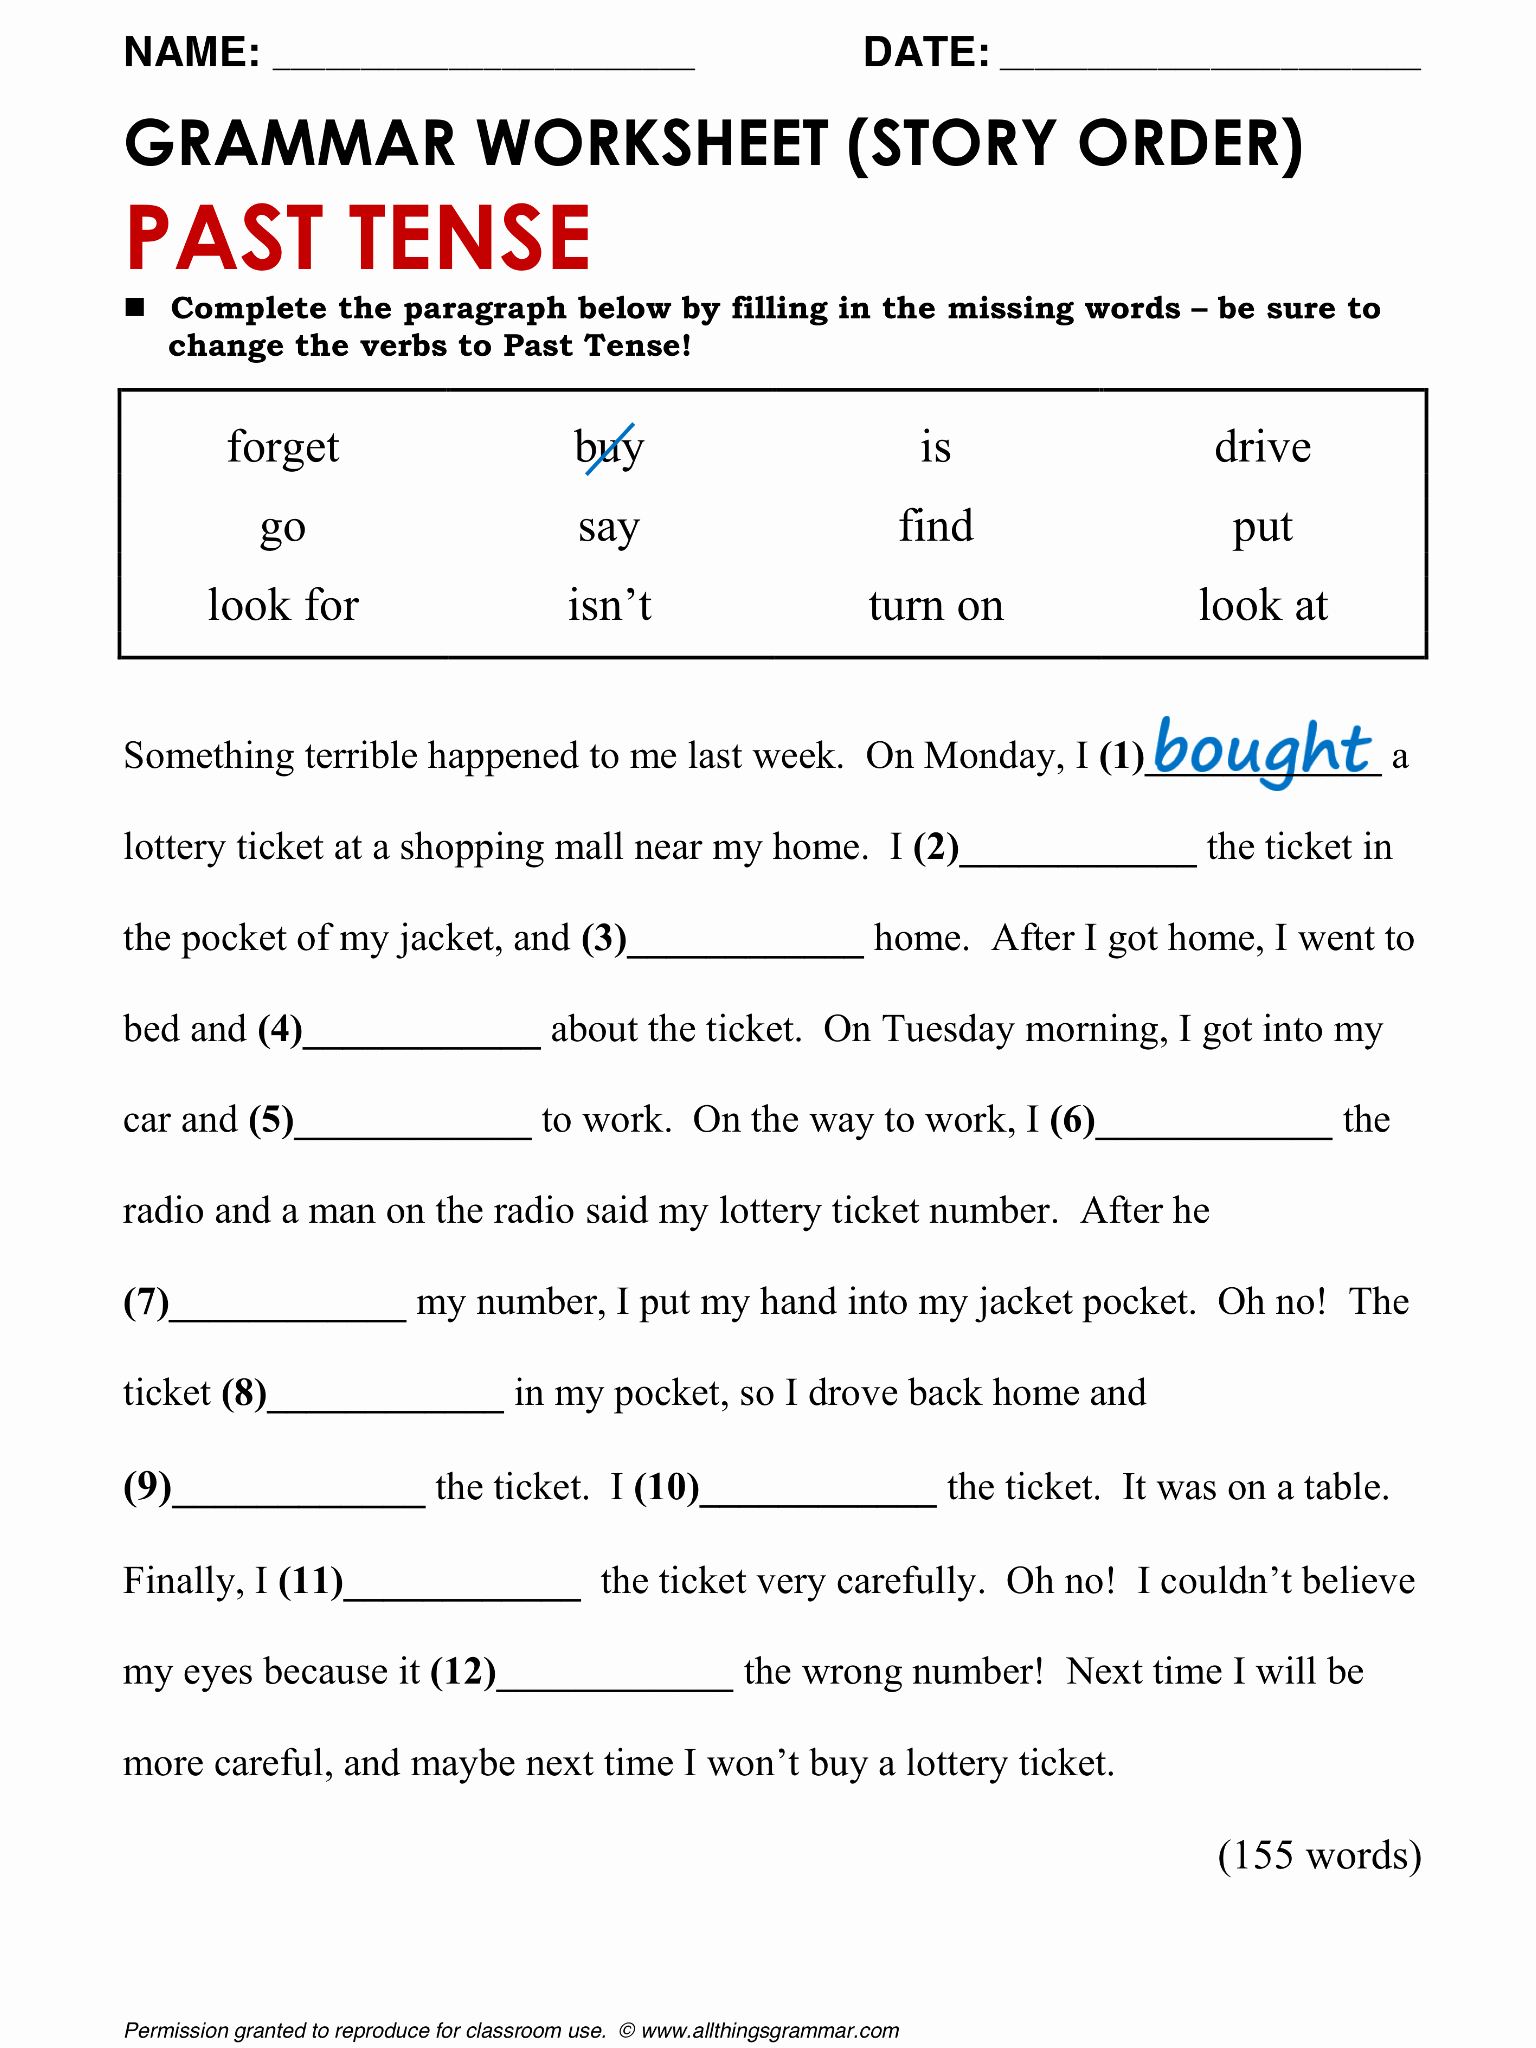 Tenses Worksheets for Grade 6 Beautiful Tenses Worksheet for Grade 6